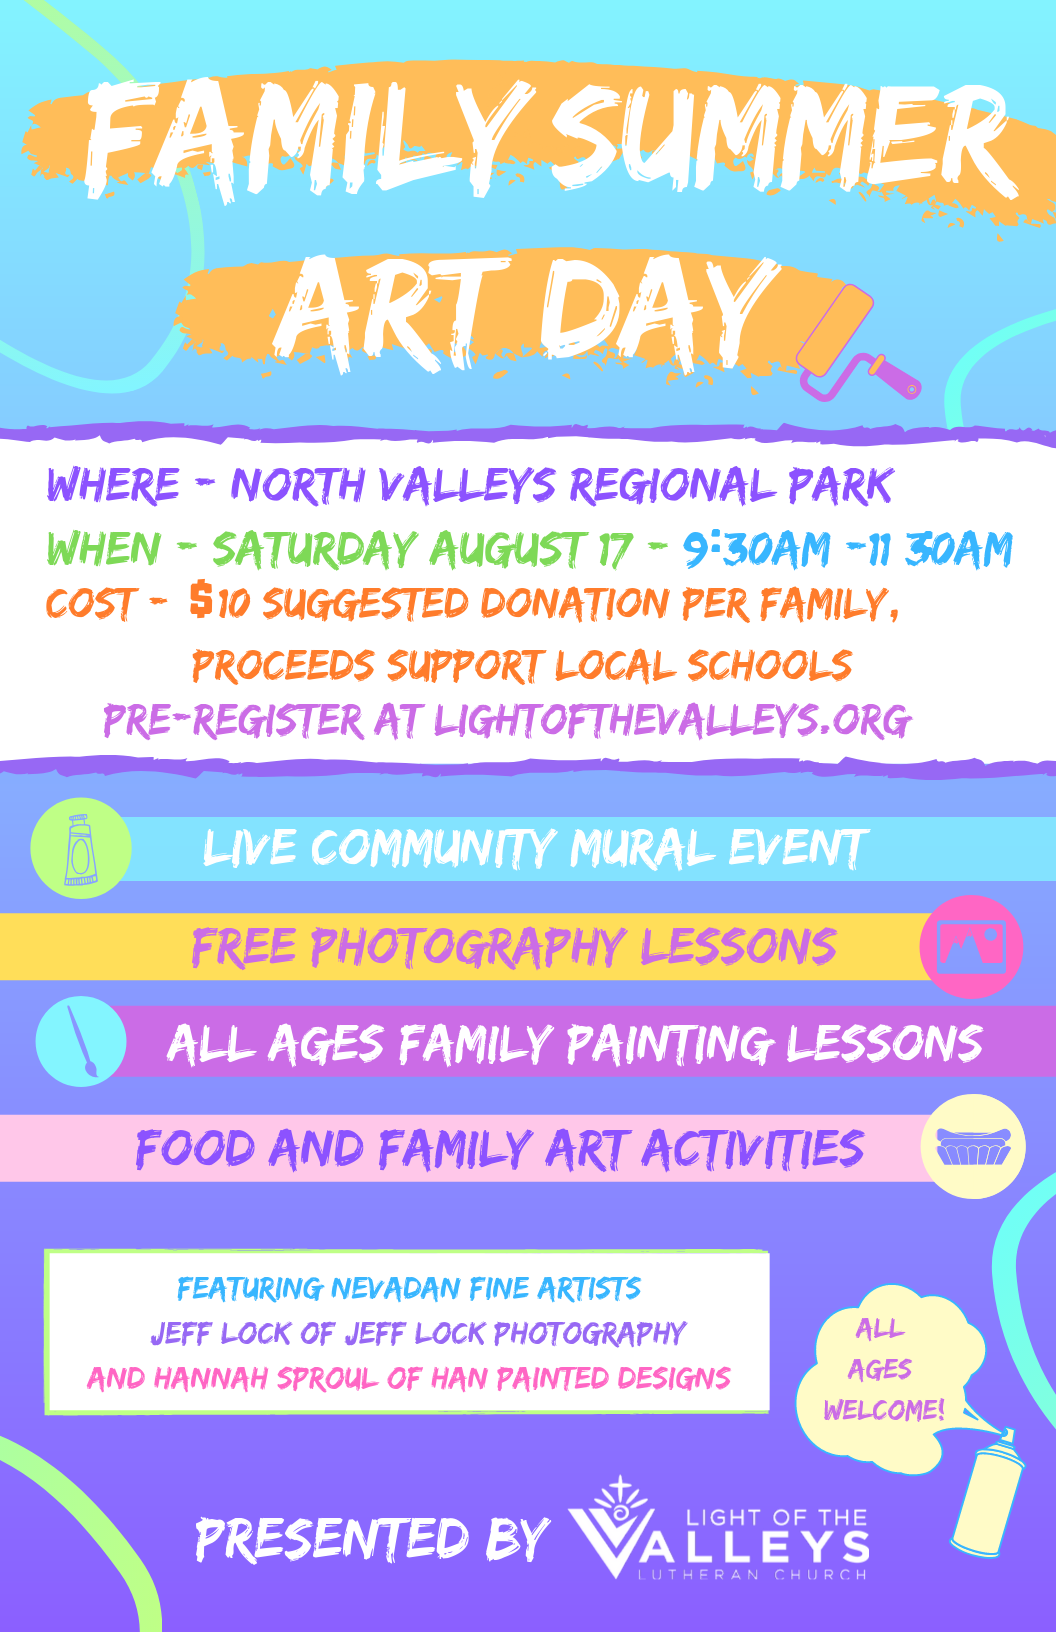 Copy of Family Summer Art Day Thurs 3_30PM Final.png